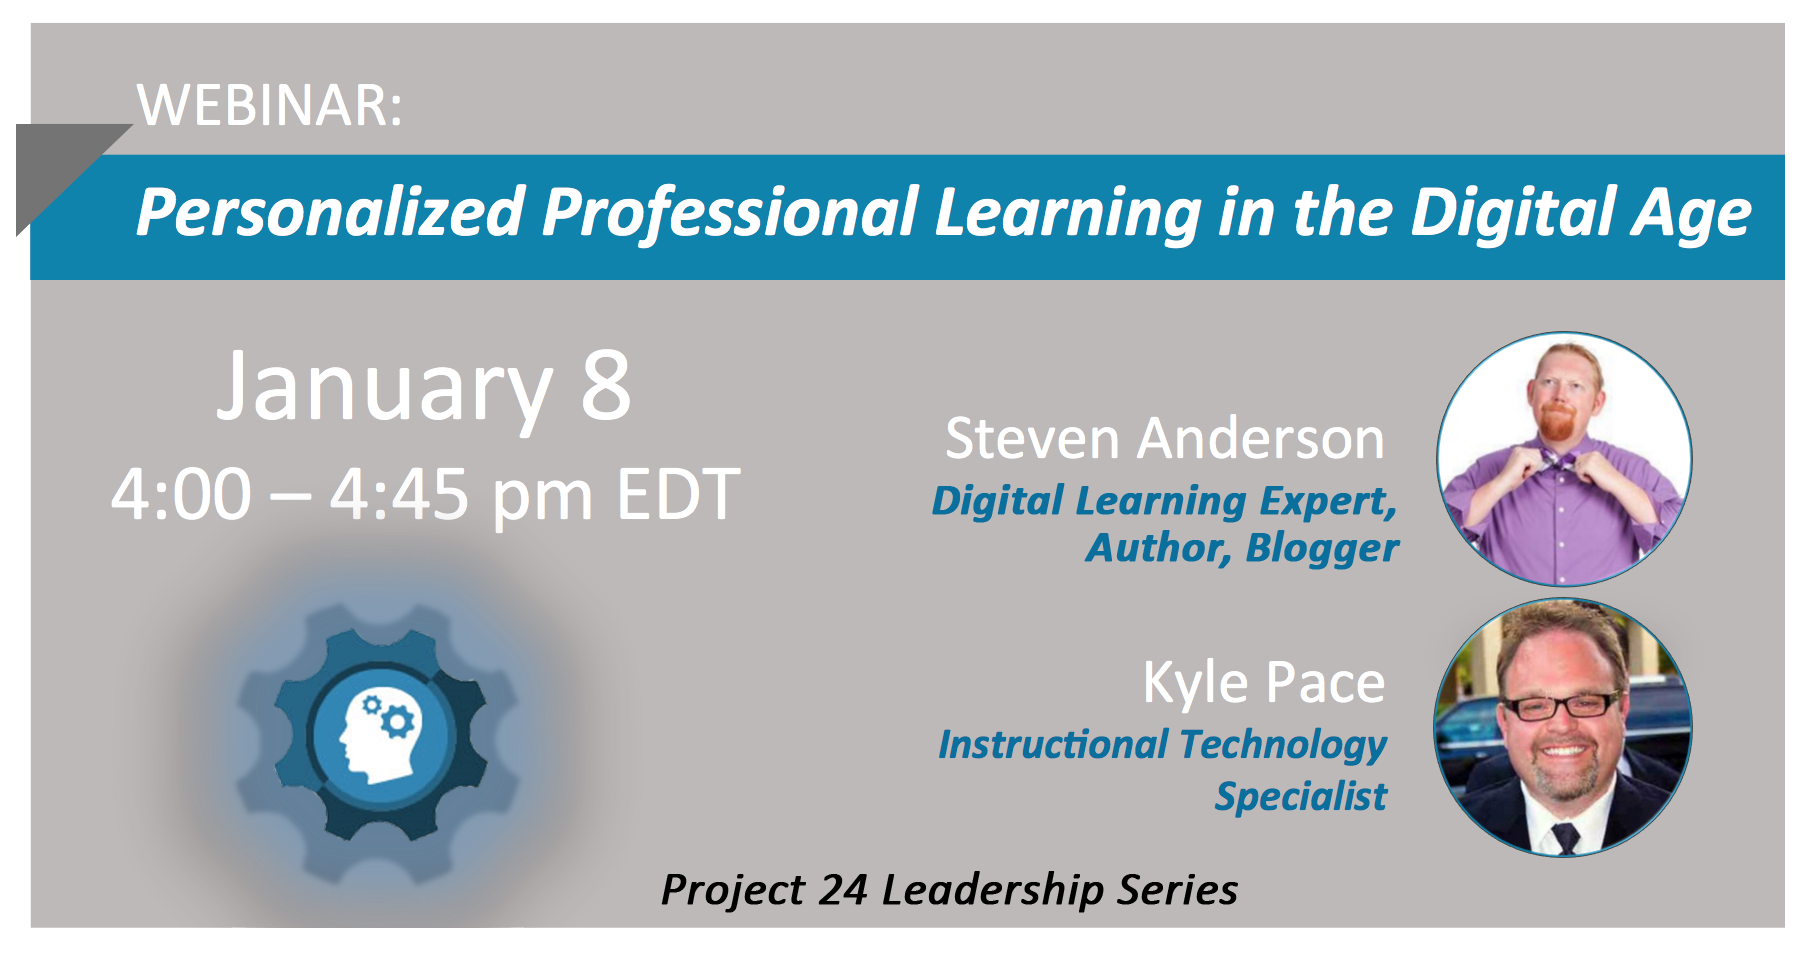 Project 24 Webinar Personalized Professional Learning In The Digital Age